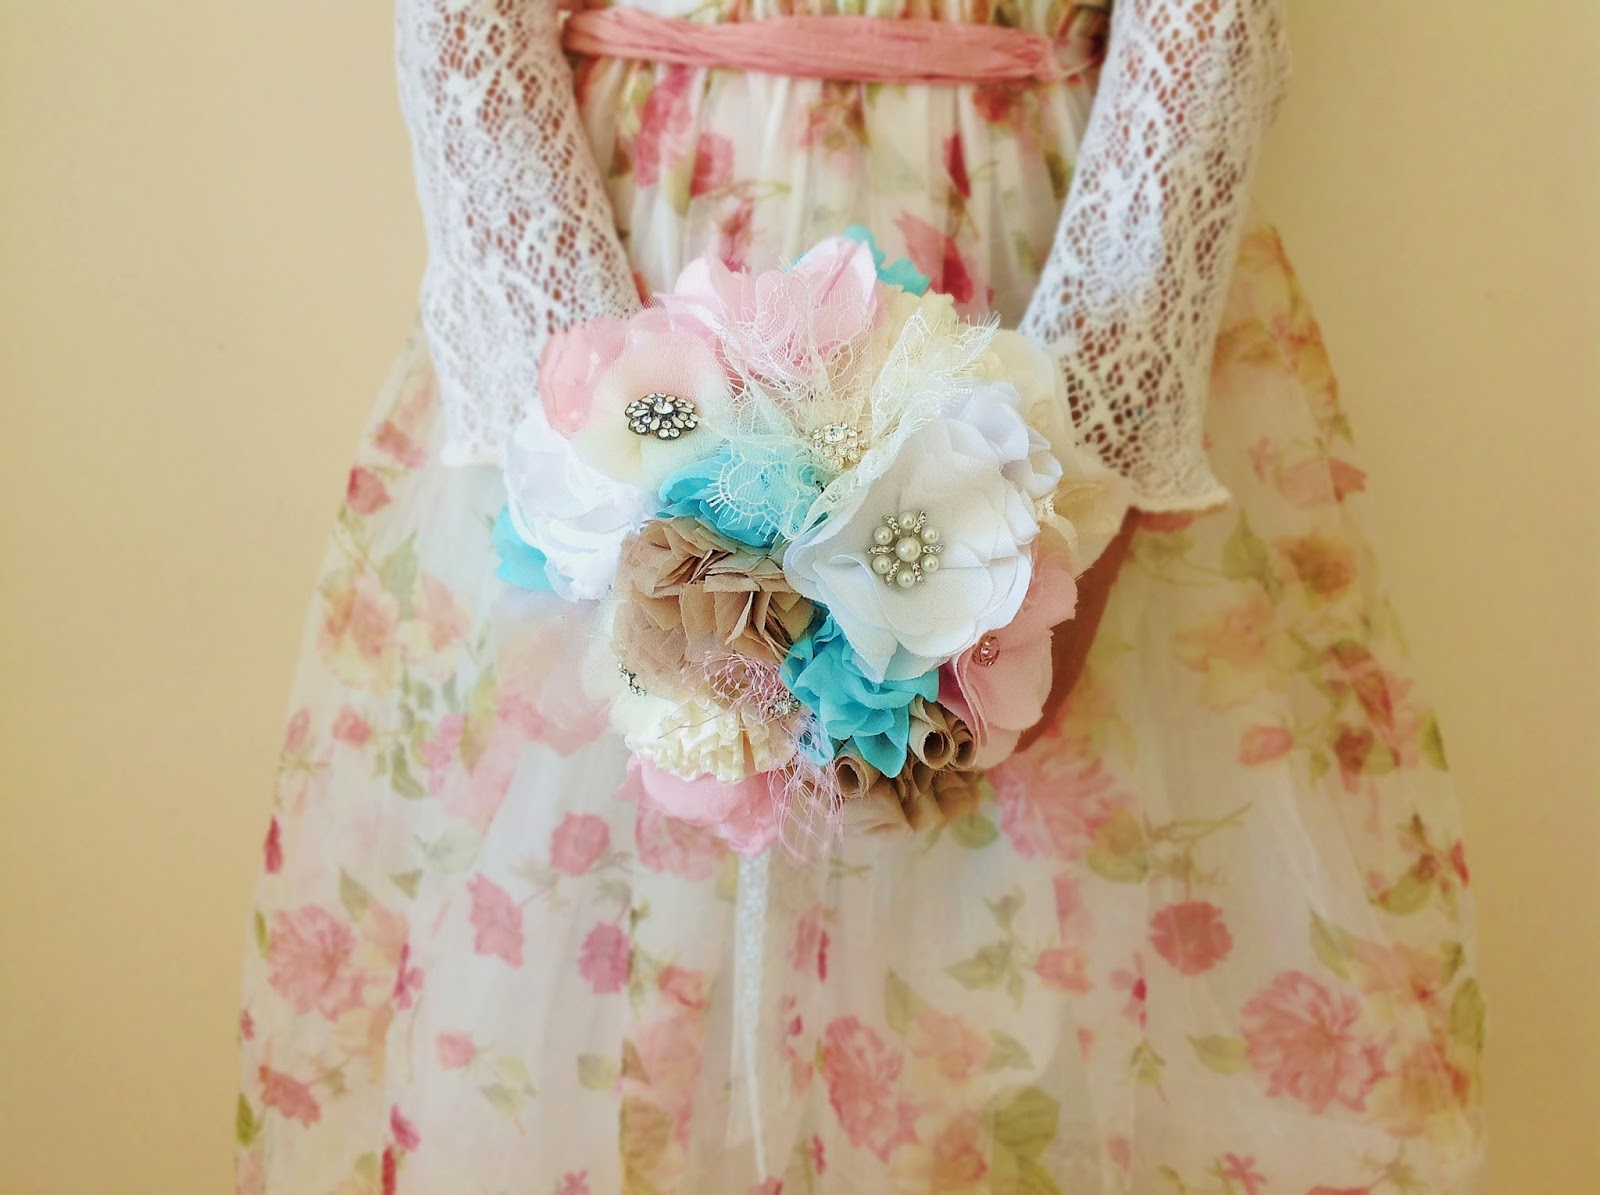 Fabric bouquet in pastel colors